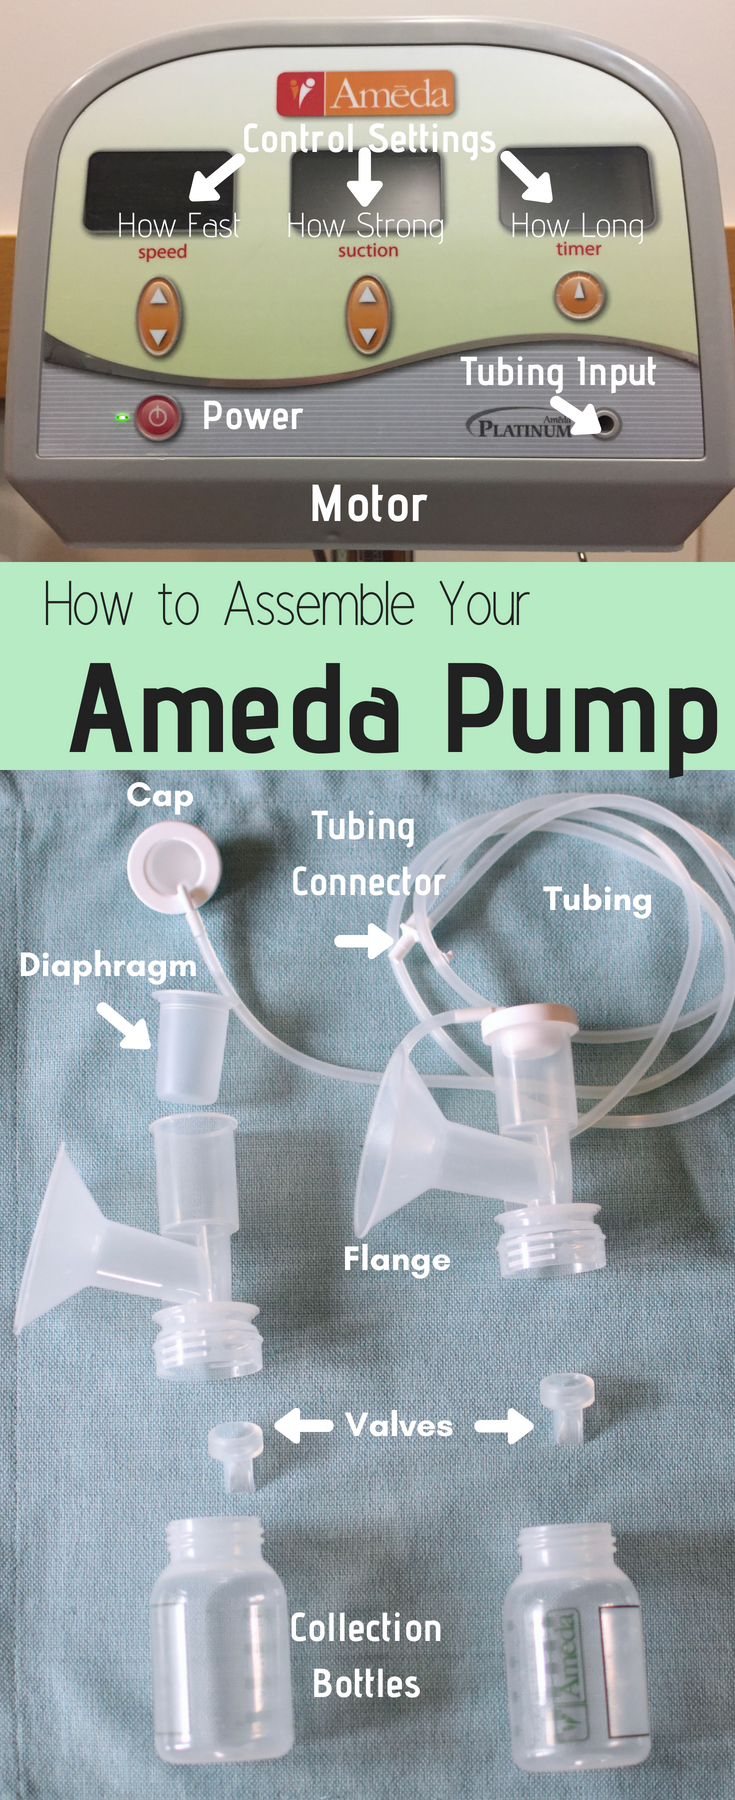 #bornandfed-When picking your pump model, consider what you need from your pump. Do you need industrial strength and long motor life? Do you need easily portable occasional use pump? Do you need something quick, cheap, and quiet? Learn pump lingo, how to assemble your pump, how to use your pump, how to pay for your pump, how get WIC coverage for your pump, and how to pump more milk. Everything you need to know. Lets go pump some milk.